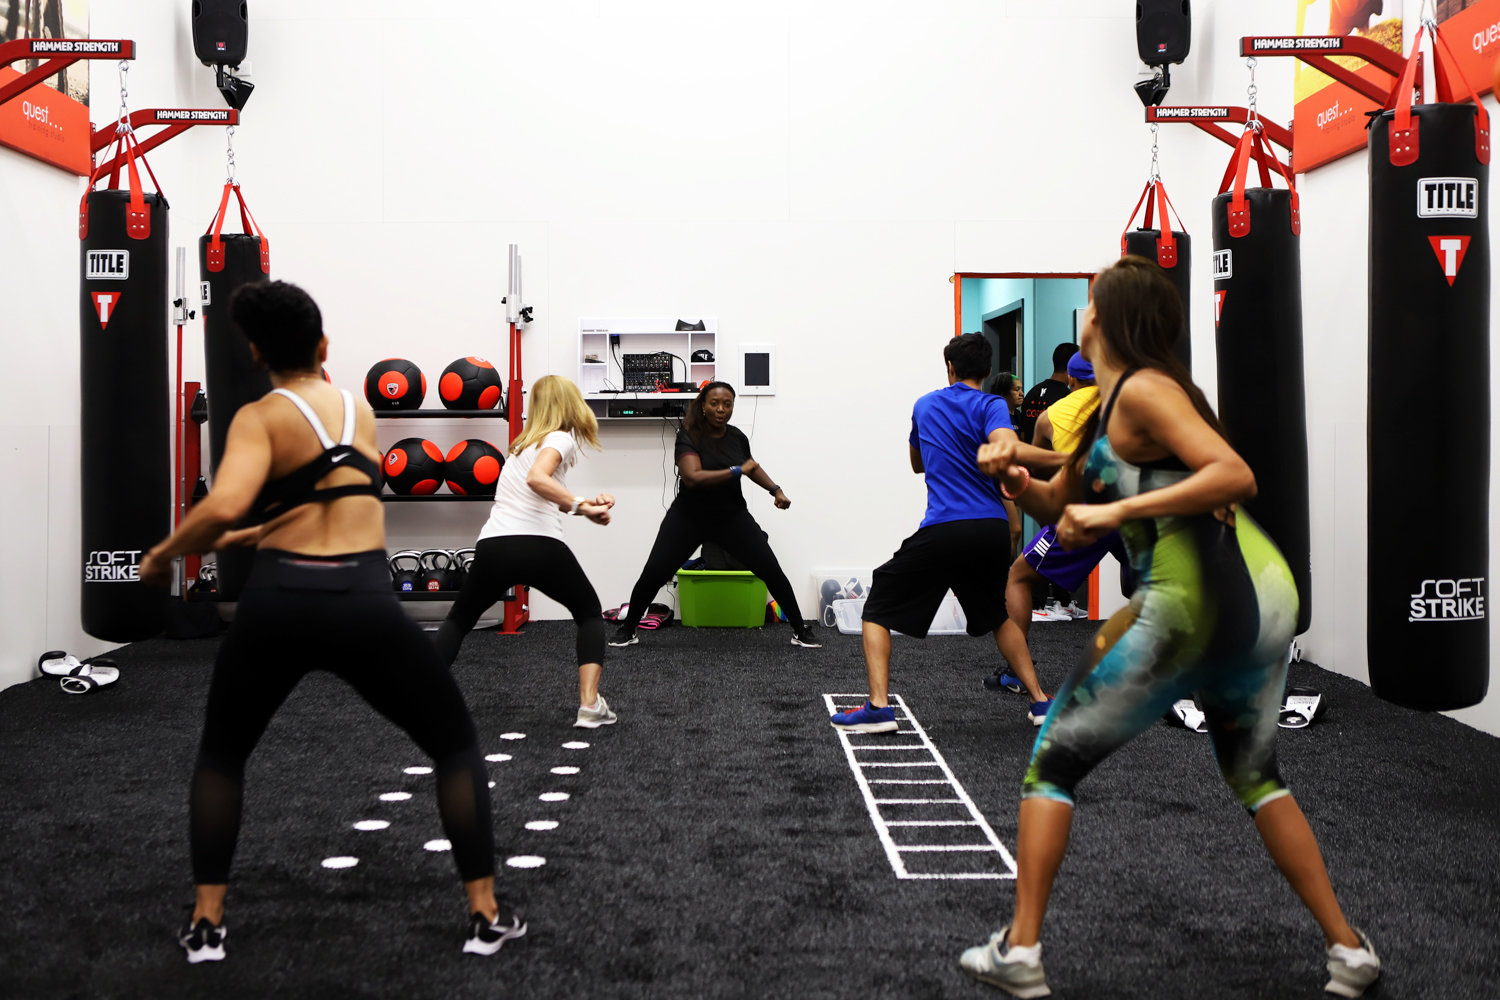 The Riverdale Y inaugurated its new Quest Training Studio with a series of classes, including one dedicated to kickboxing led by Aliette Leung. The space was previously home to The Y's racquetball court.